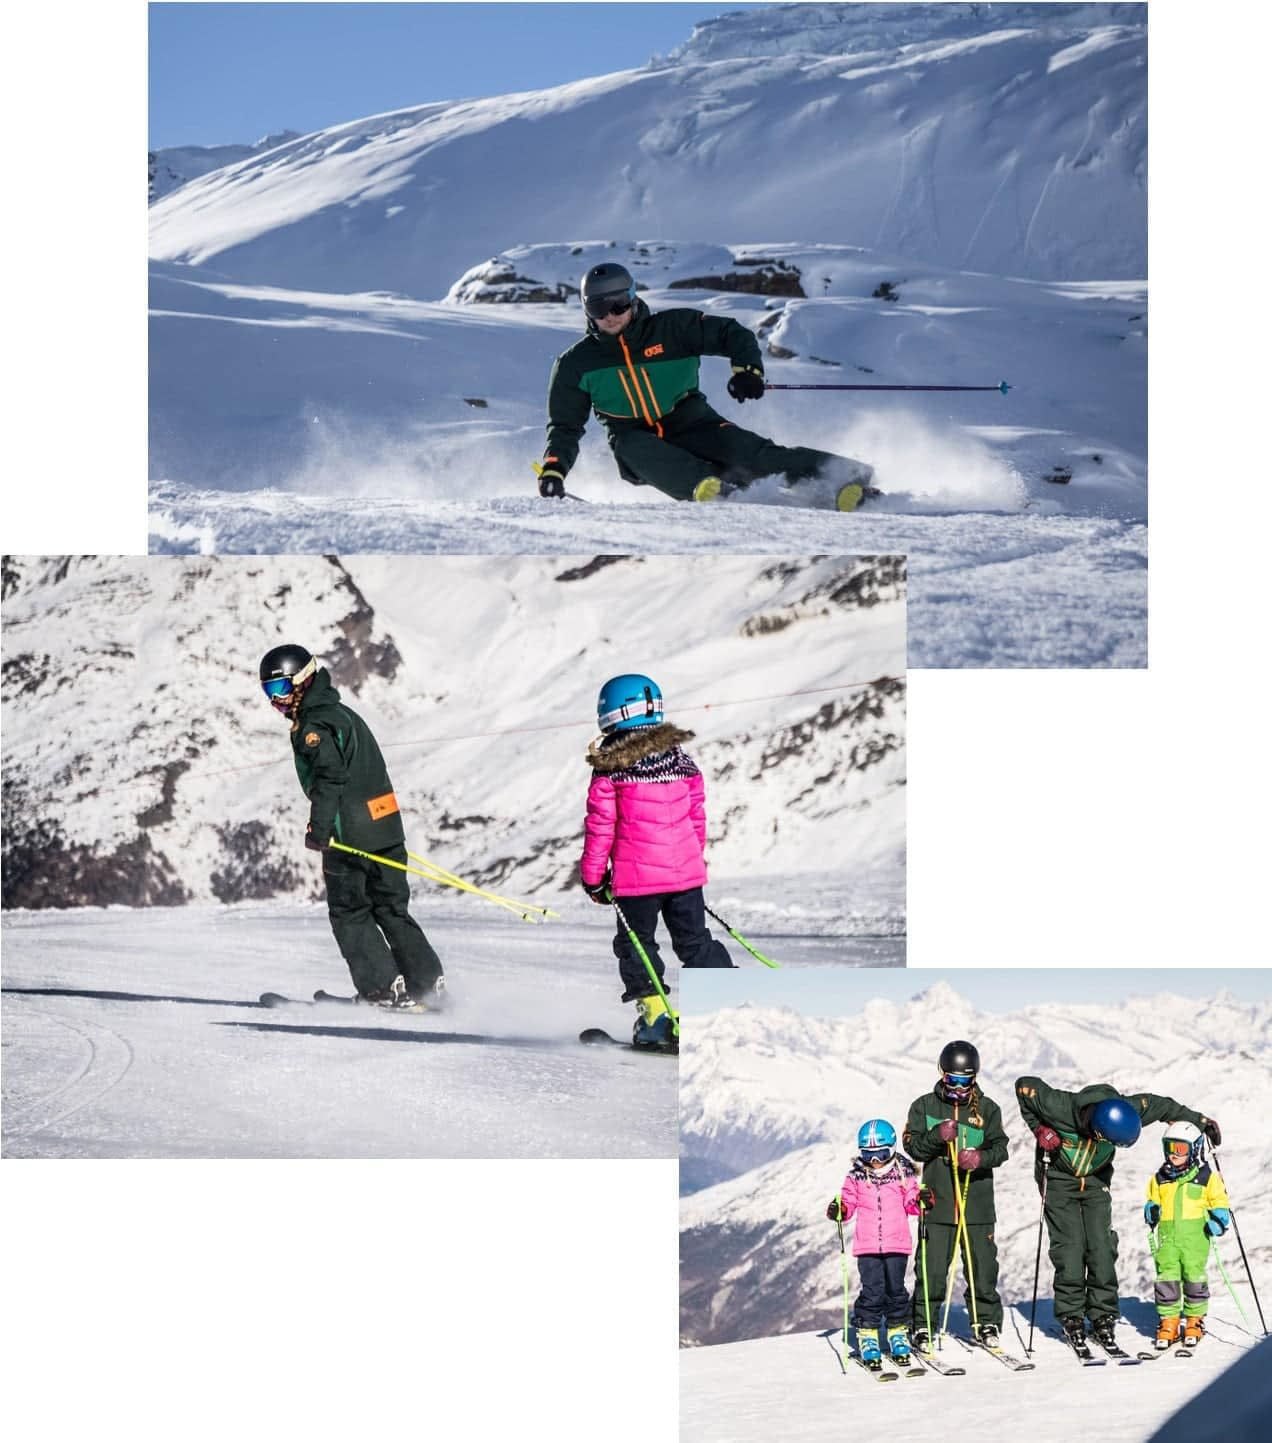 saas fee ski school instructors